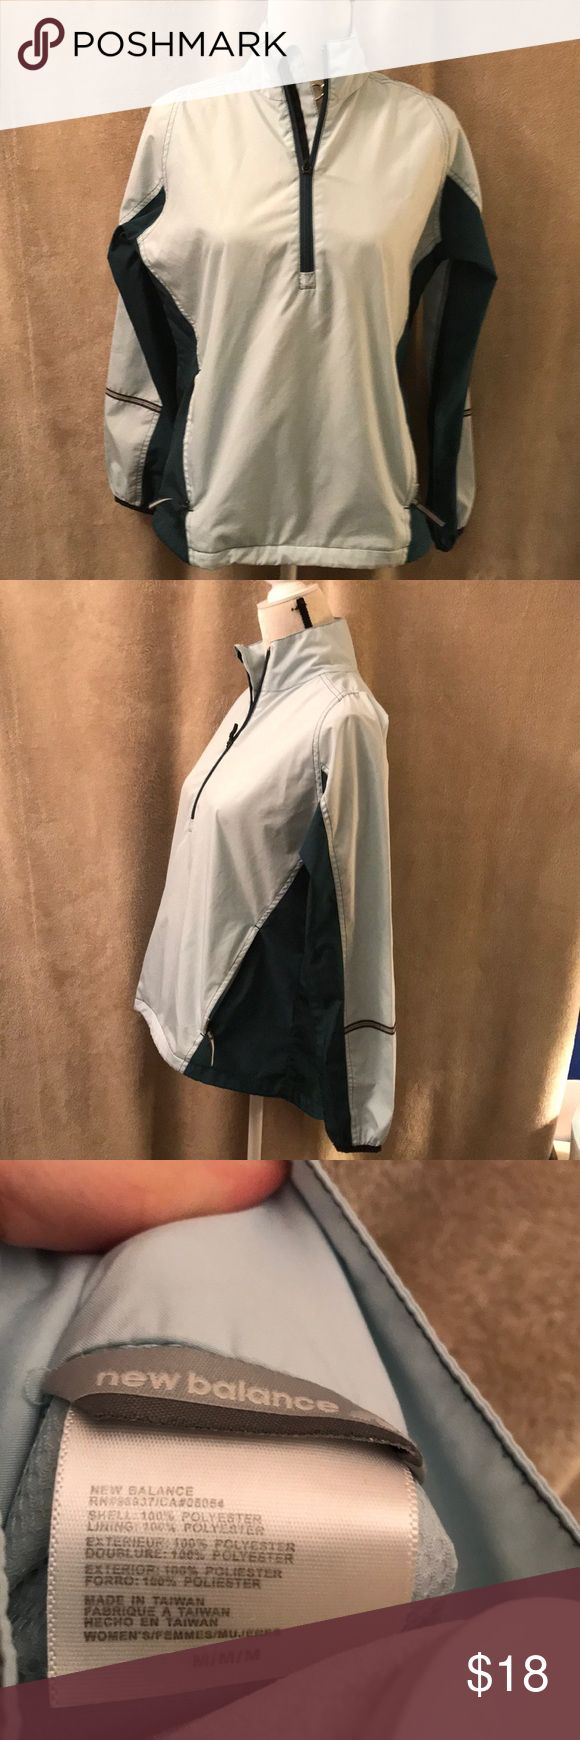 "Women's New Balance Pull Over Windbreaker med Mint green NEW BALANCE pullover windbreaker size med Approximate Measurements:  Pit to pit 19"" Length 23"" No known flaws!  Ask if you have questions! New Balance Jackets & Coats"